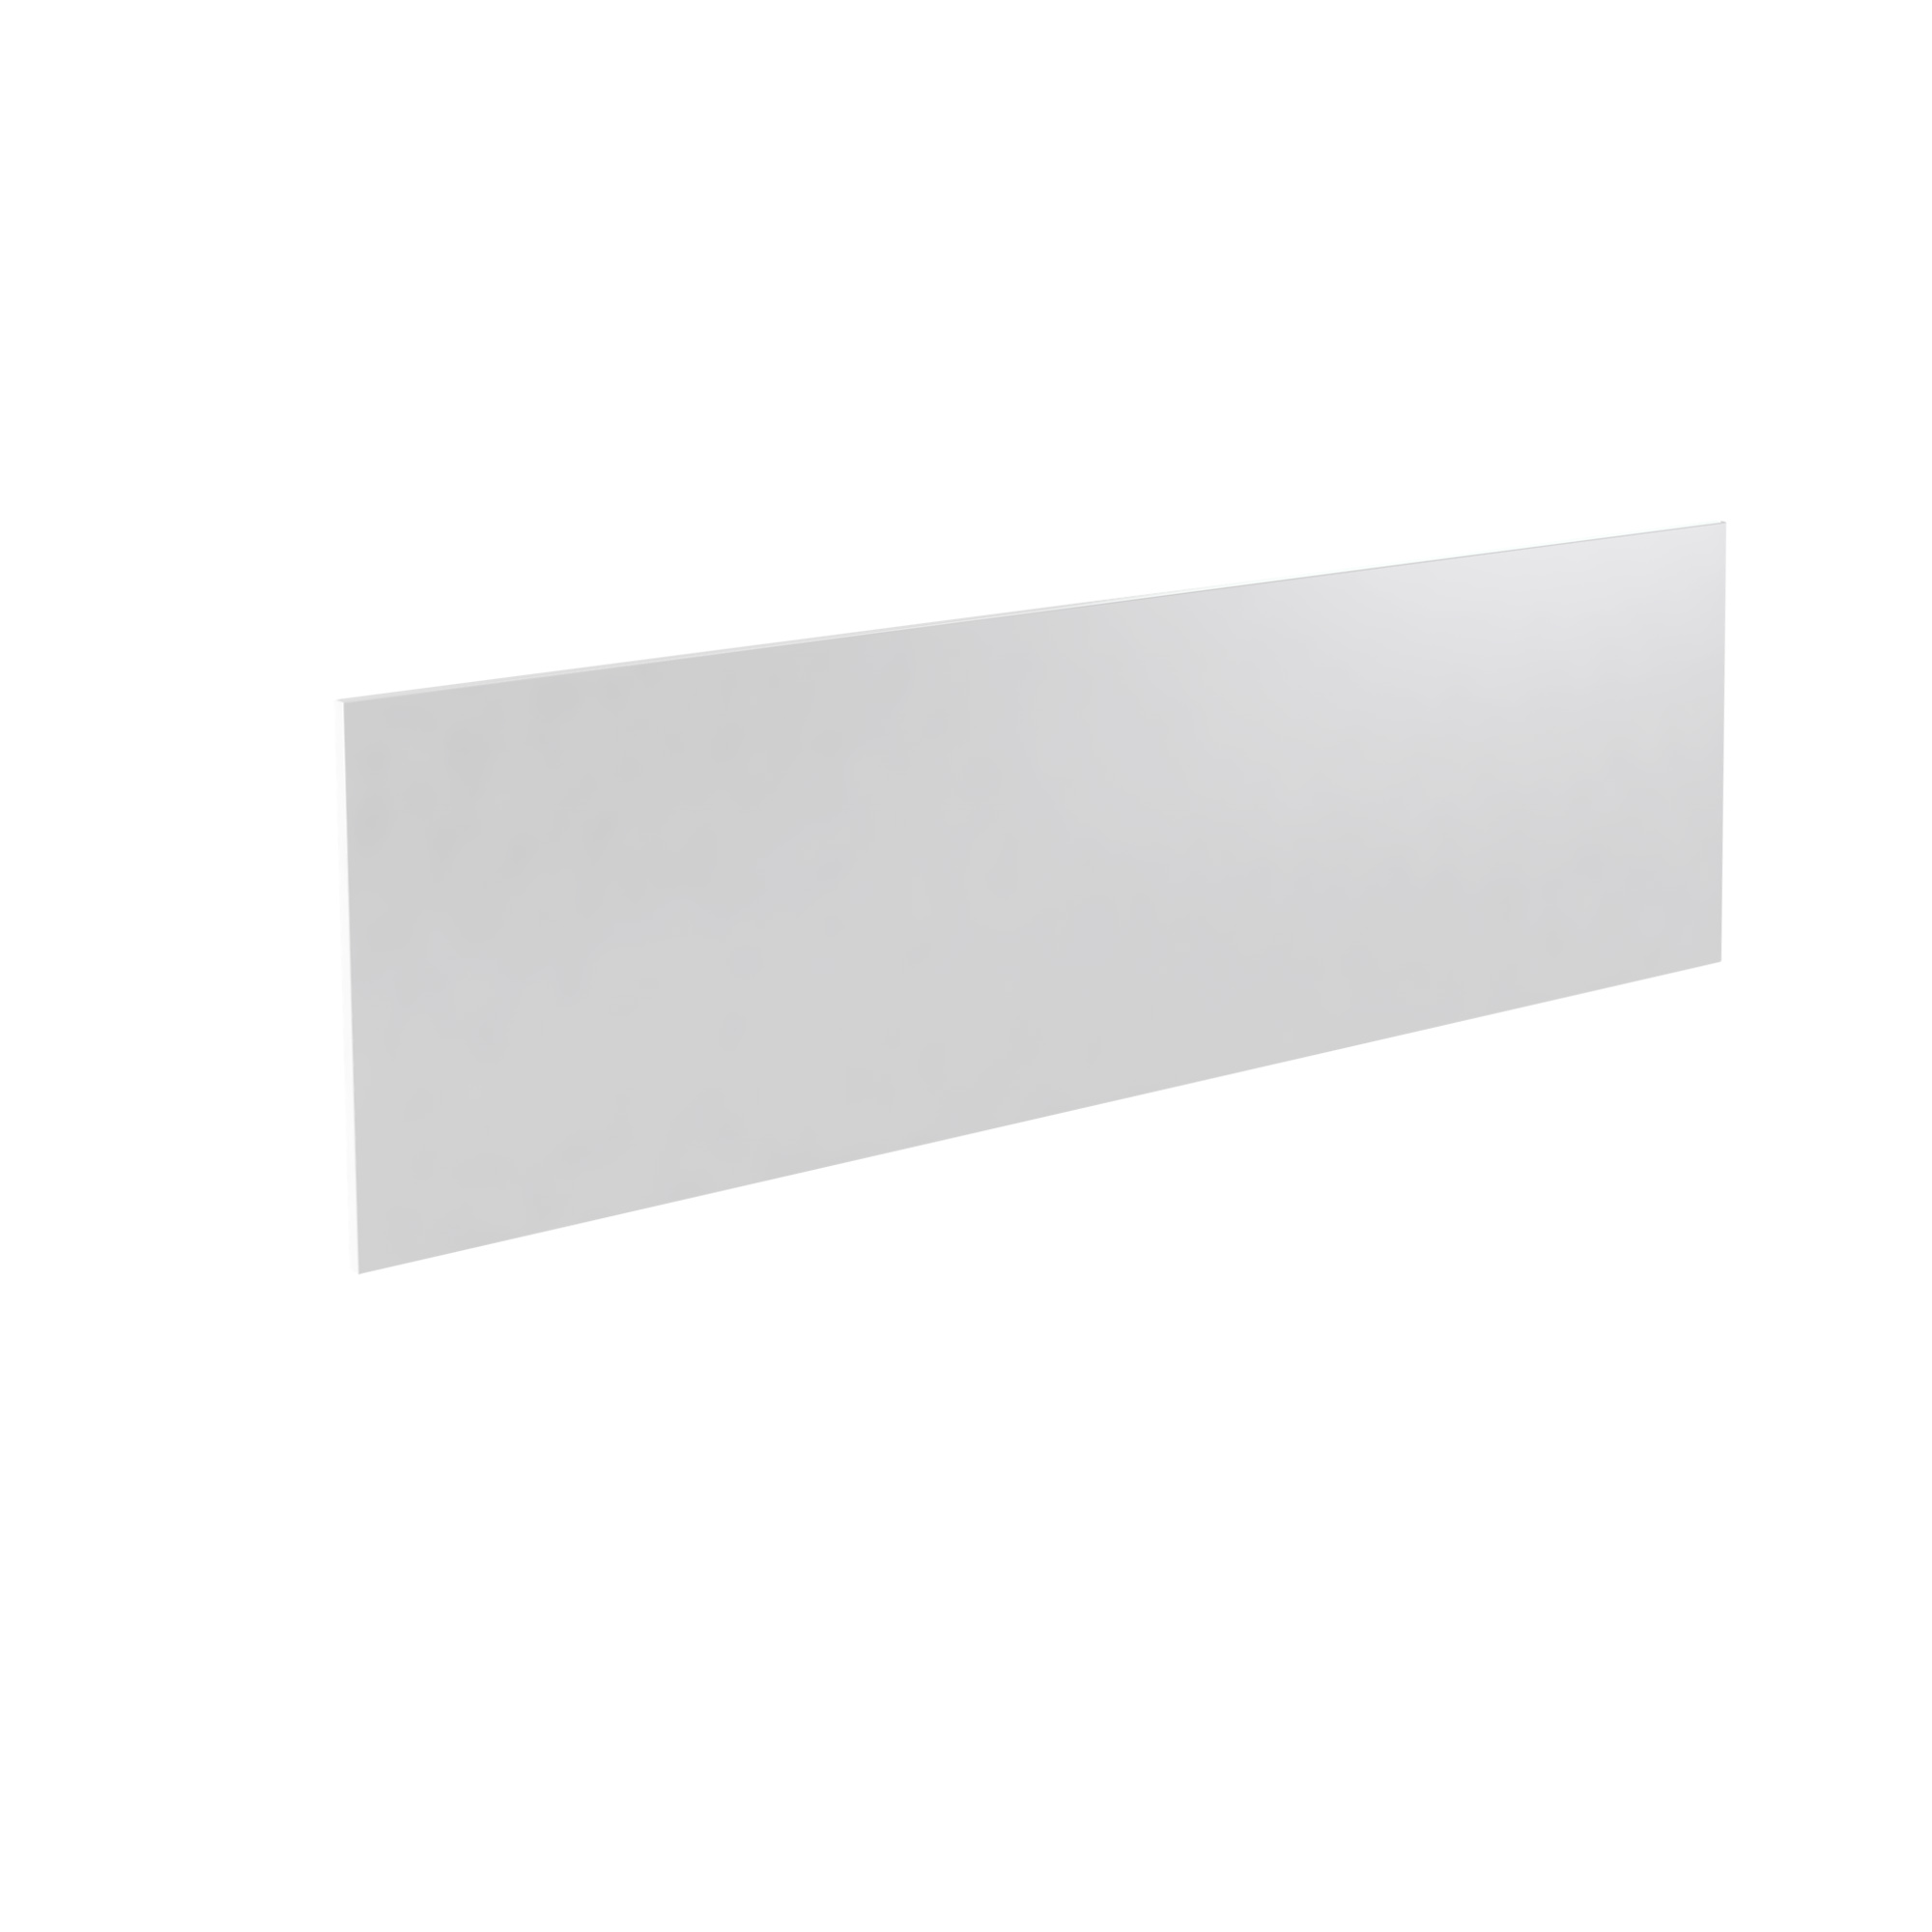 K-Vit Ikon 1800mm Bath Panel - White